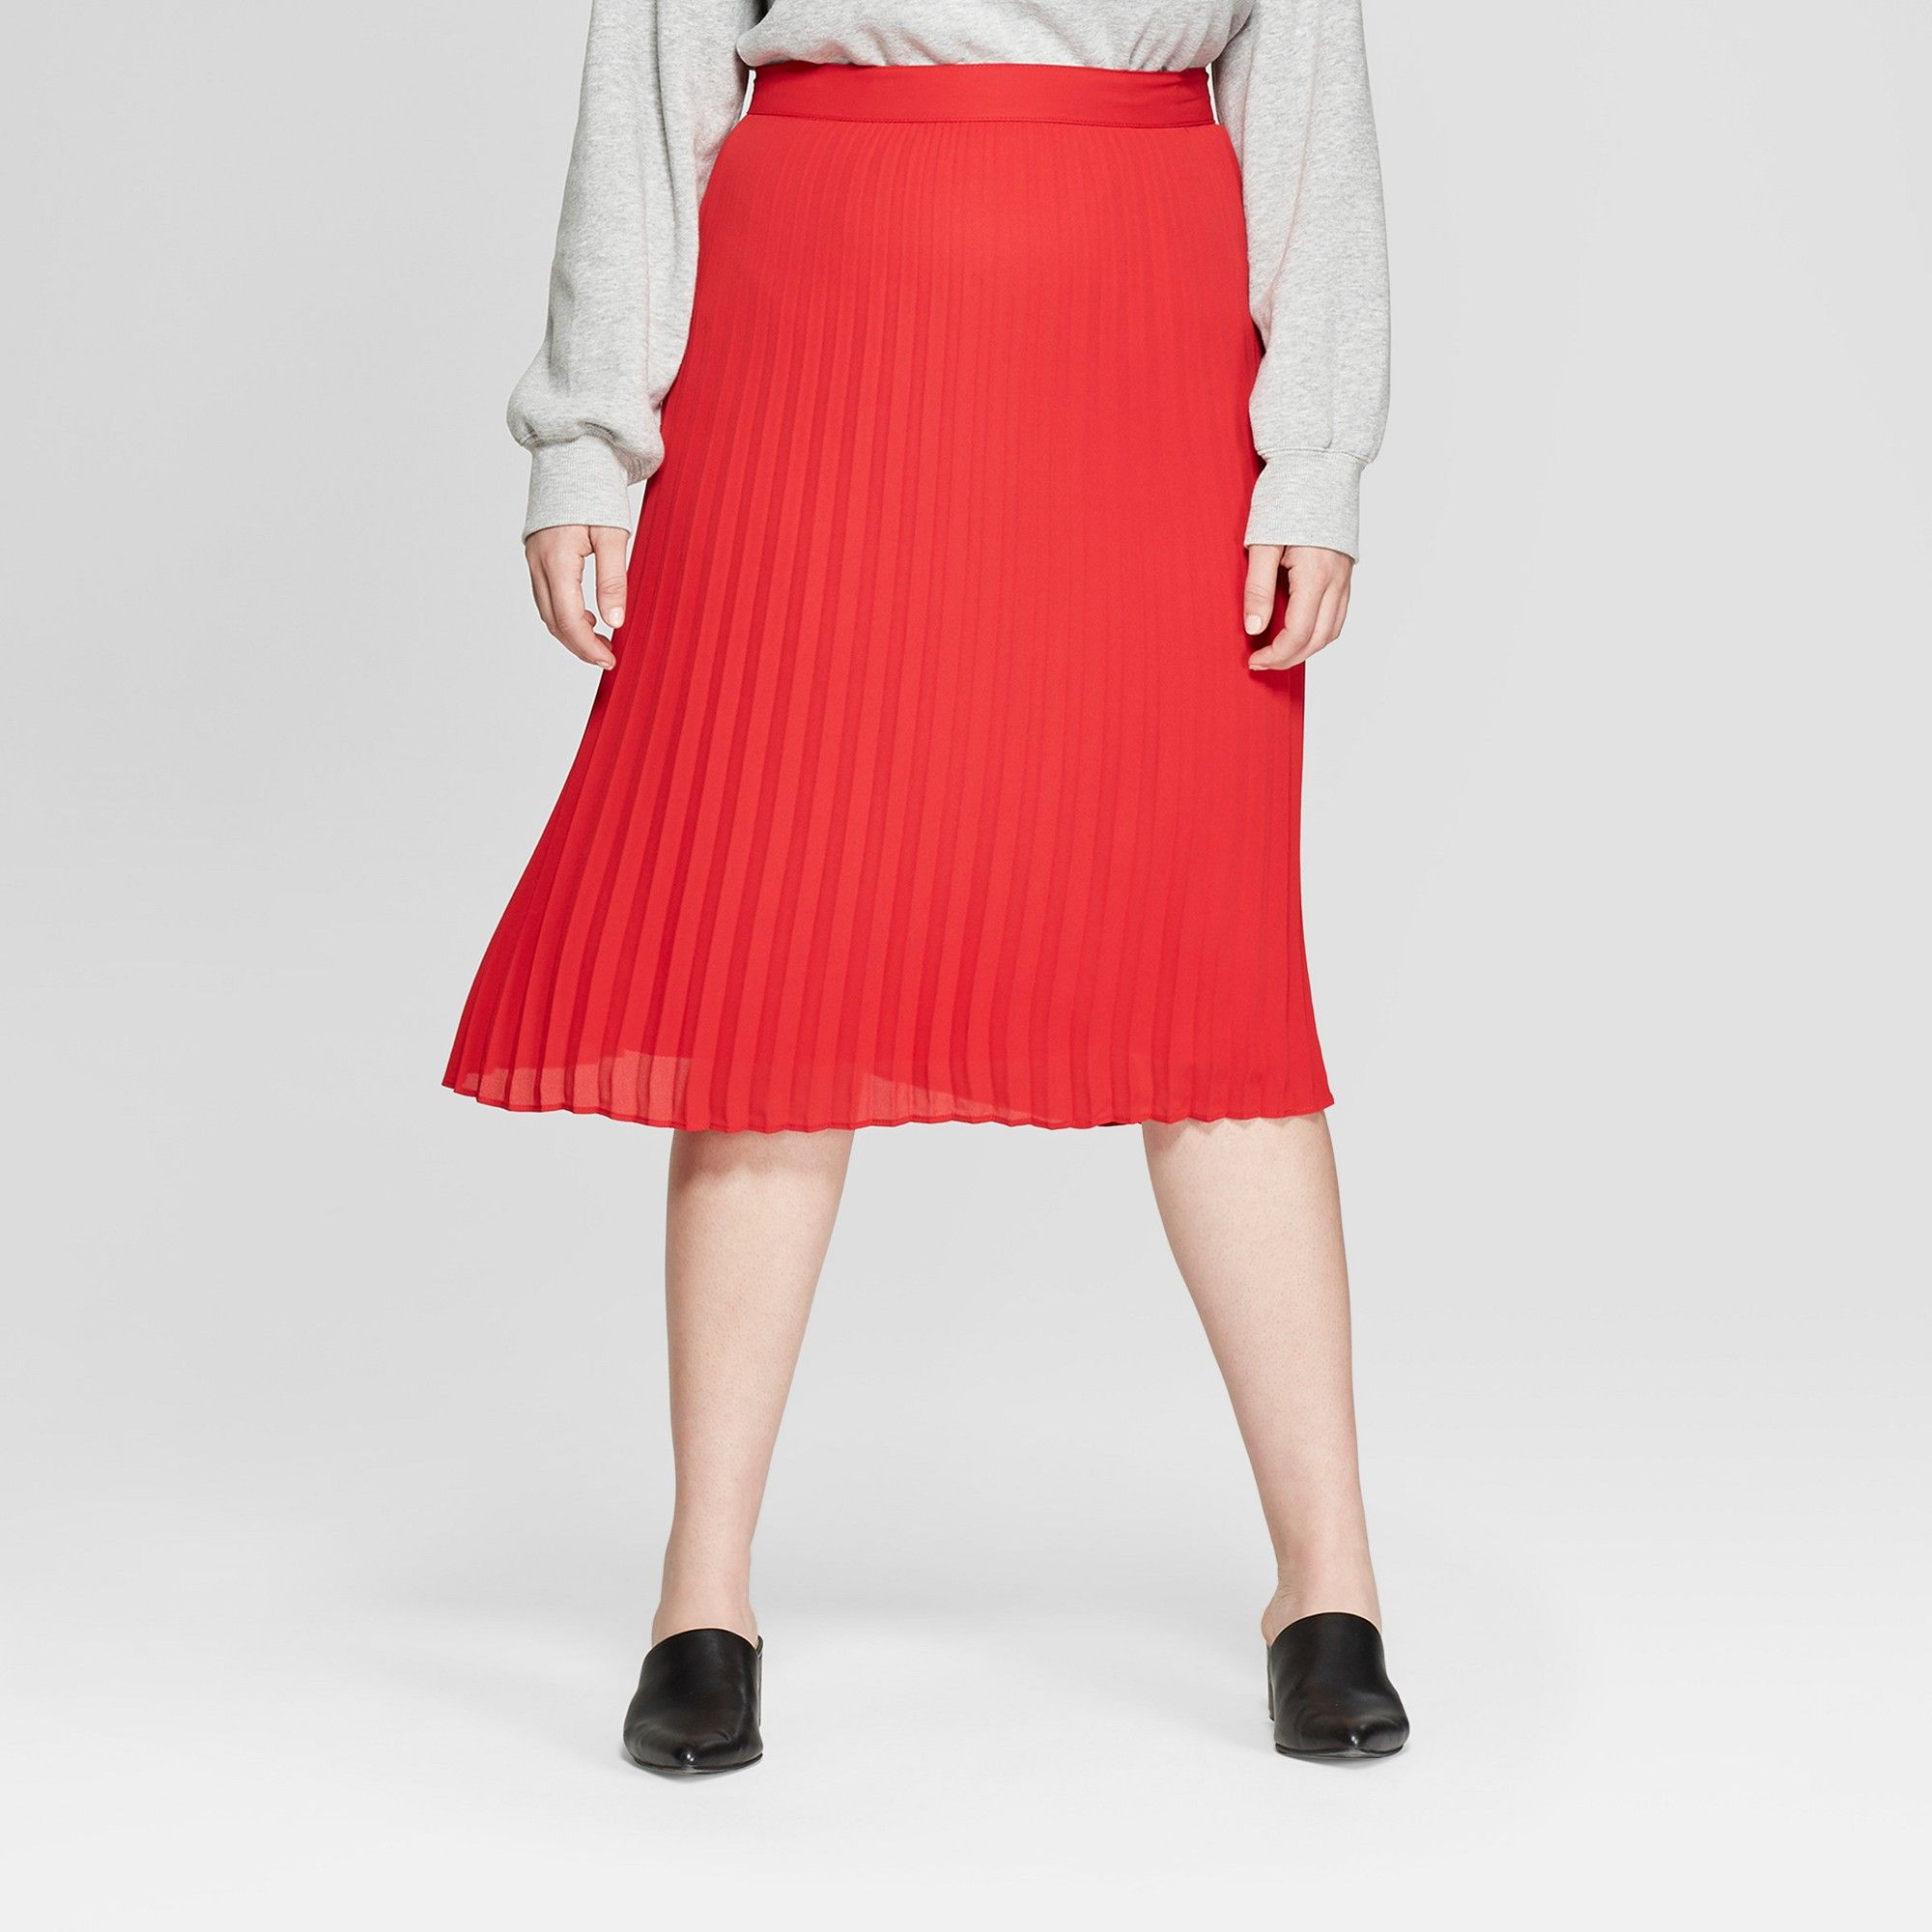 35fbacf0e Women's Plus Size Pleated Midi Skirt - A New Day + Vital Voices - Red 1X